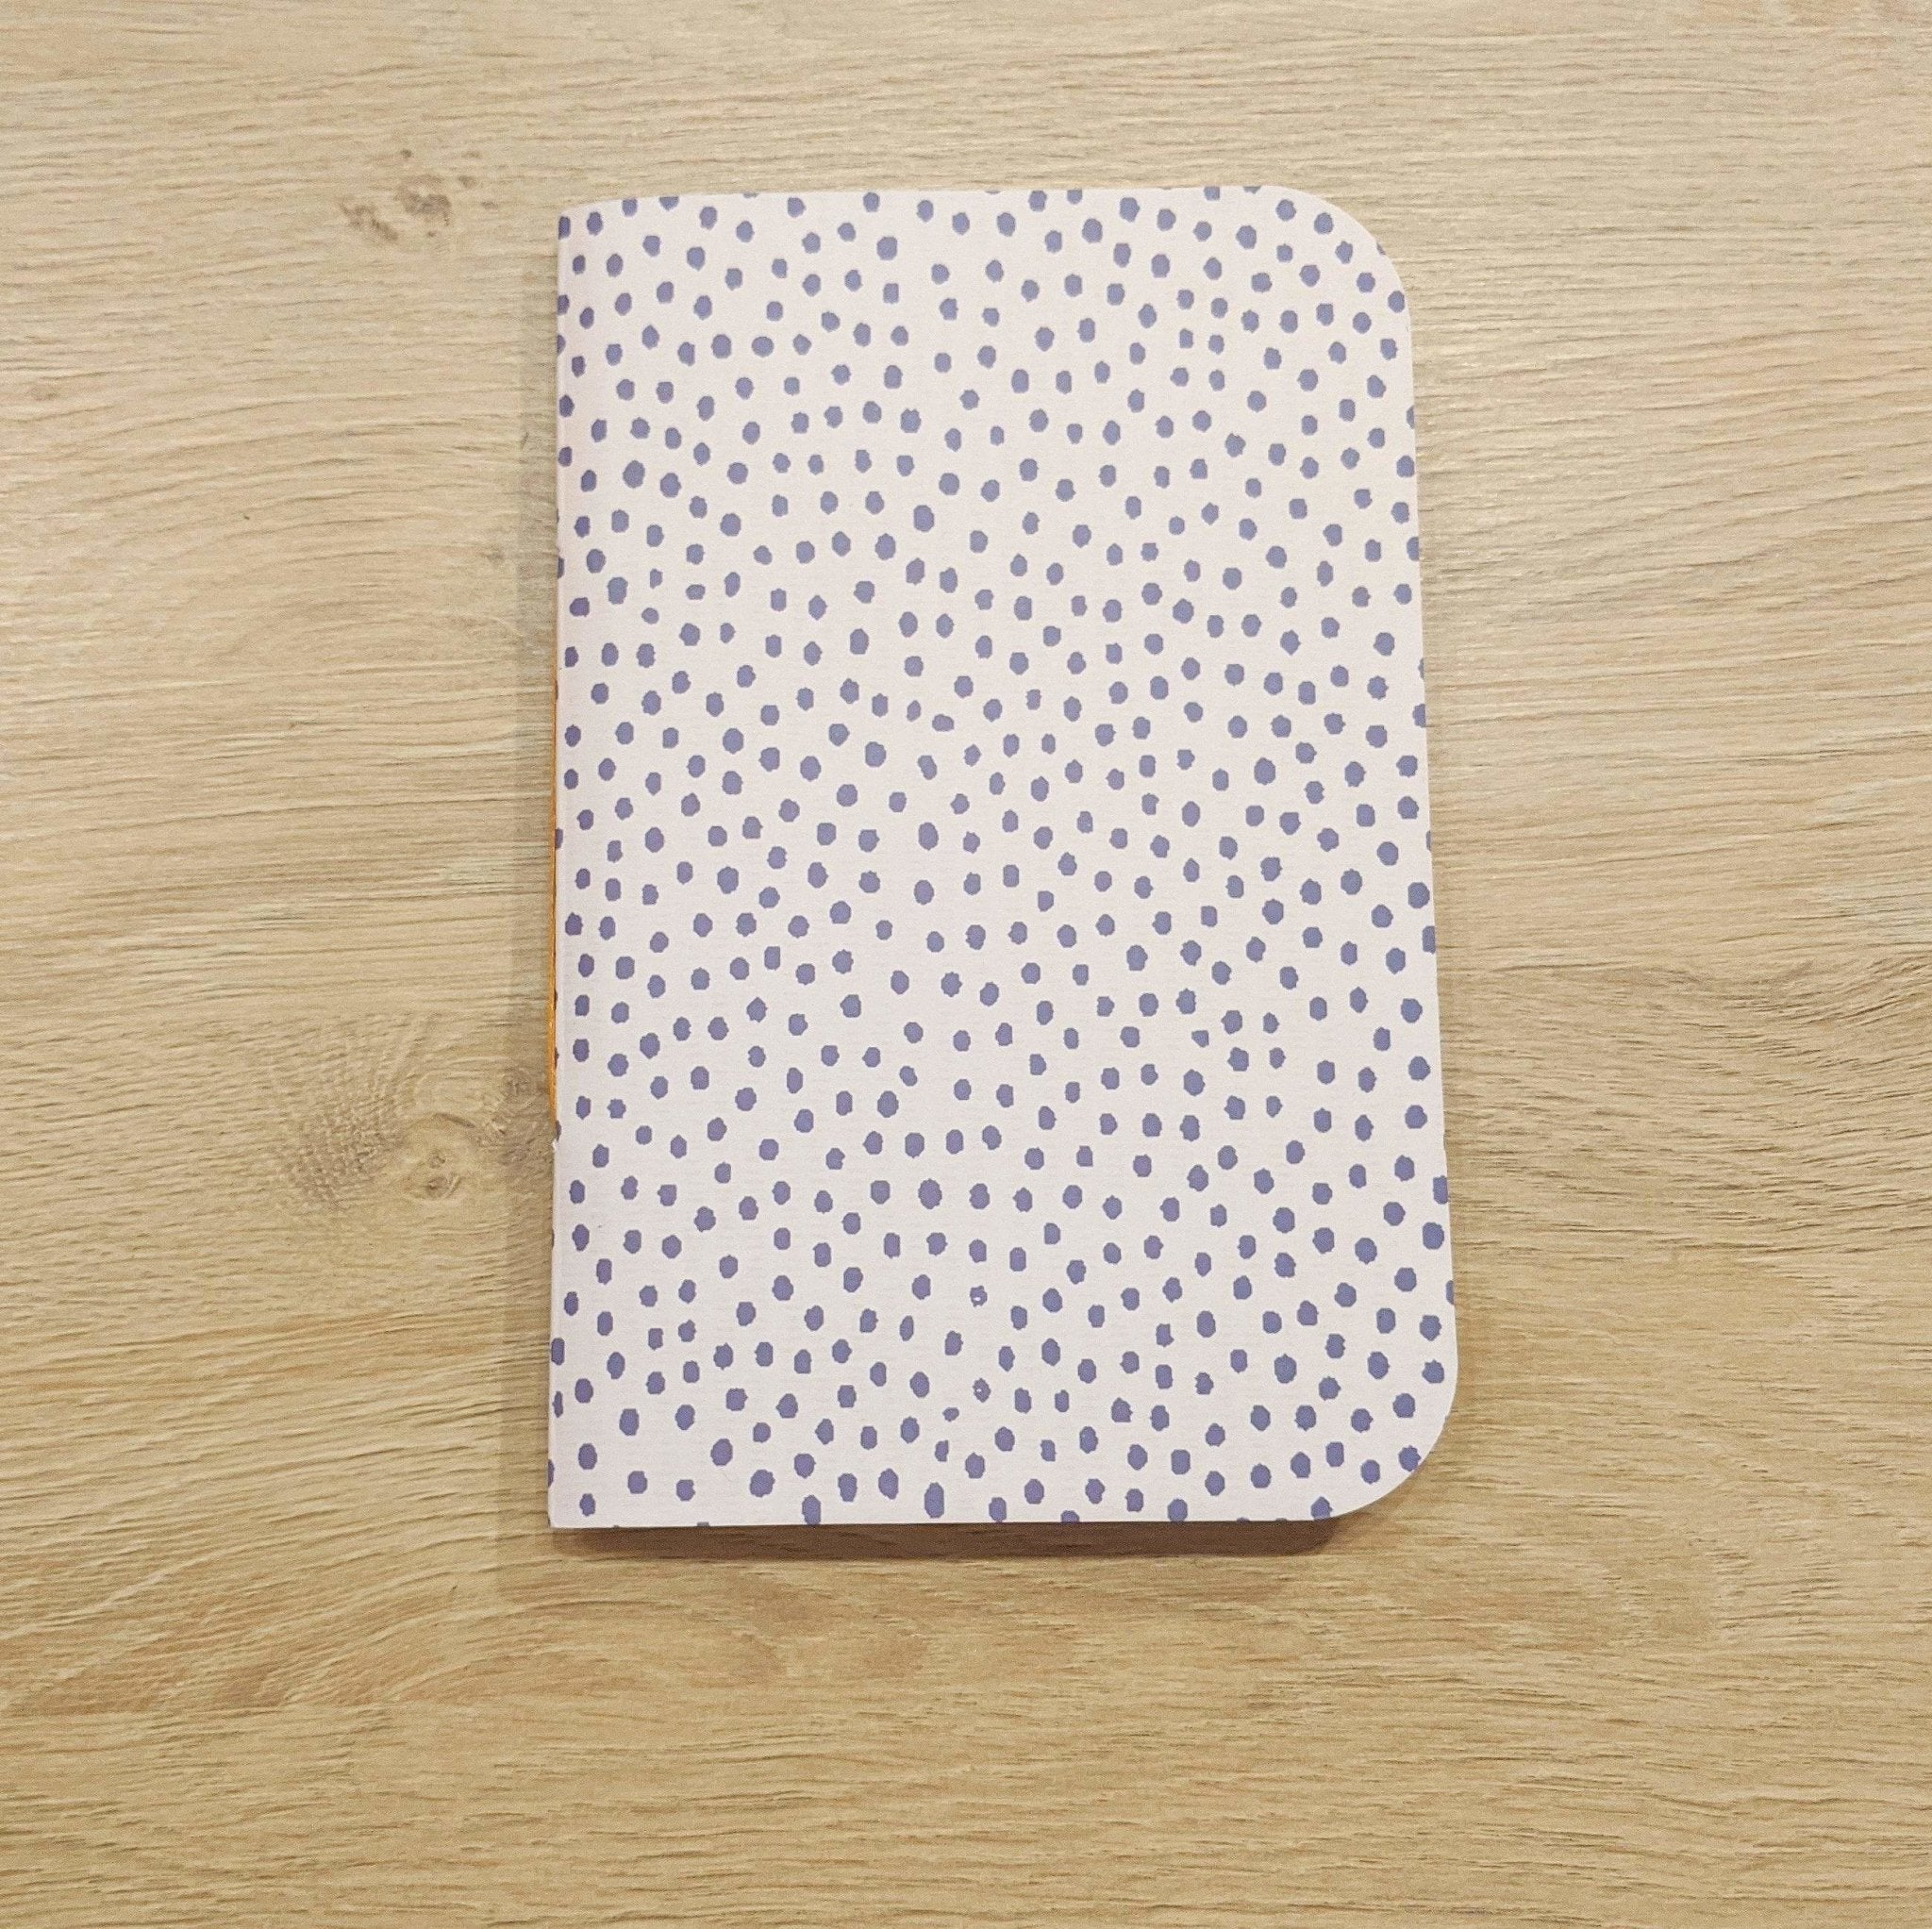 Handmade Journal - Peiea Grace -Freehand Market